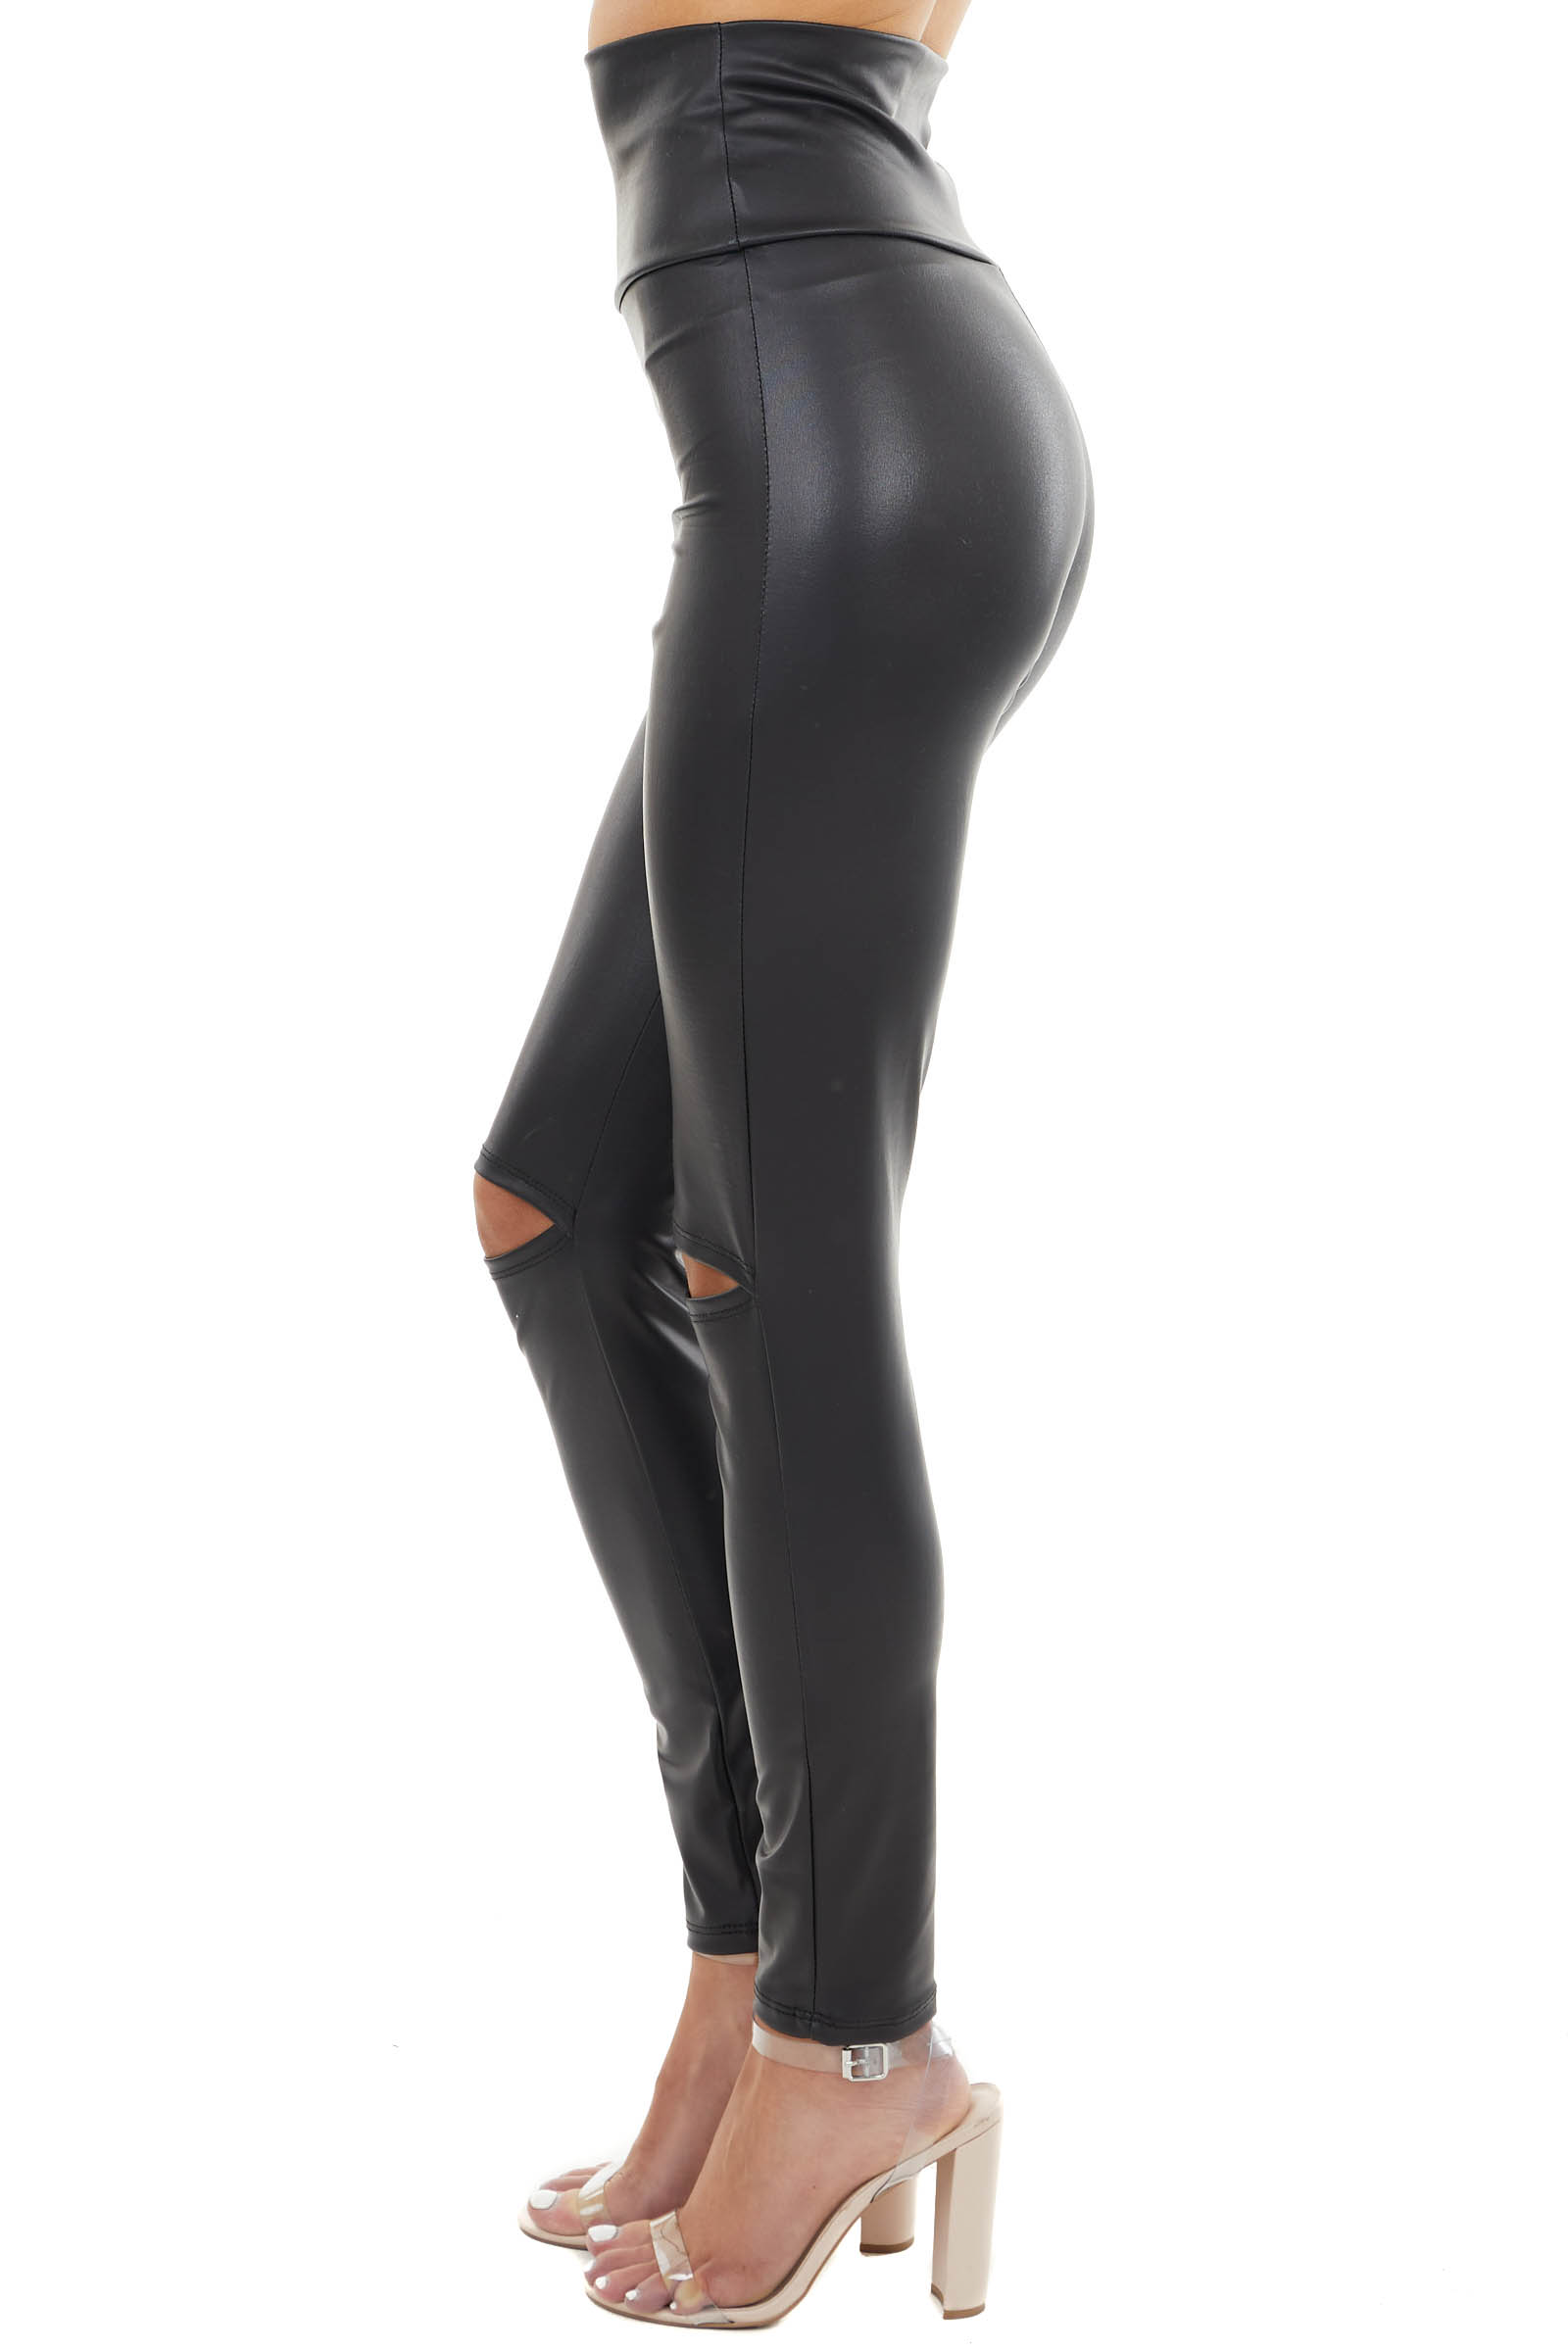 Black Faux Leather Leggings with Knee Slit Details